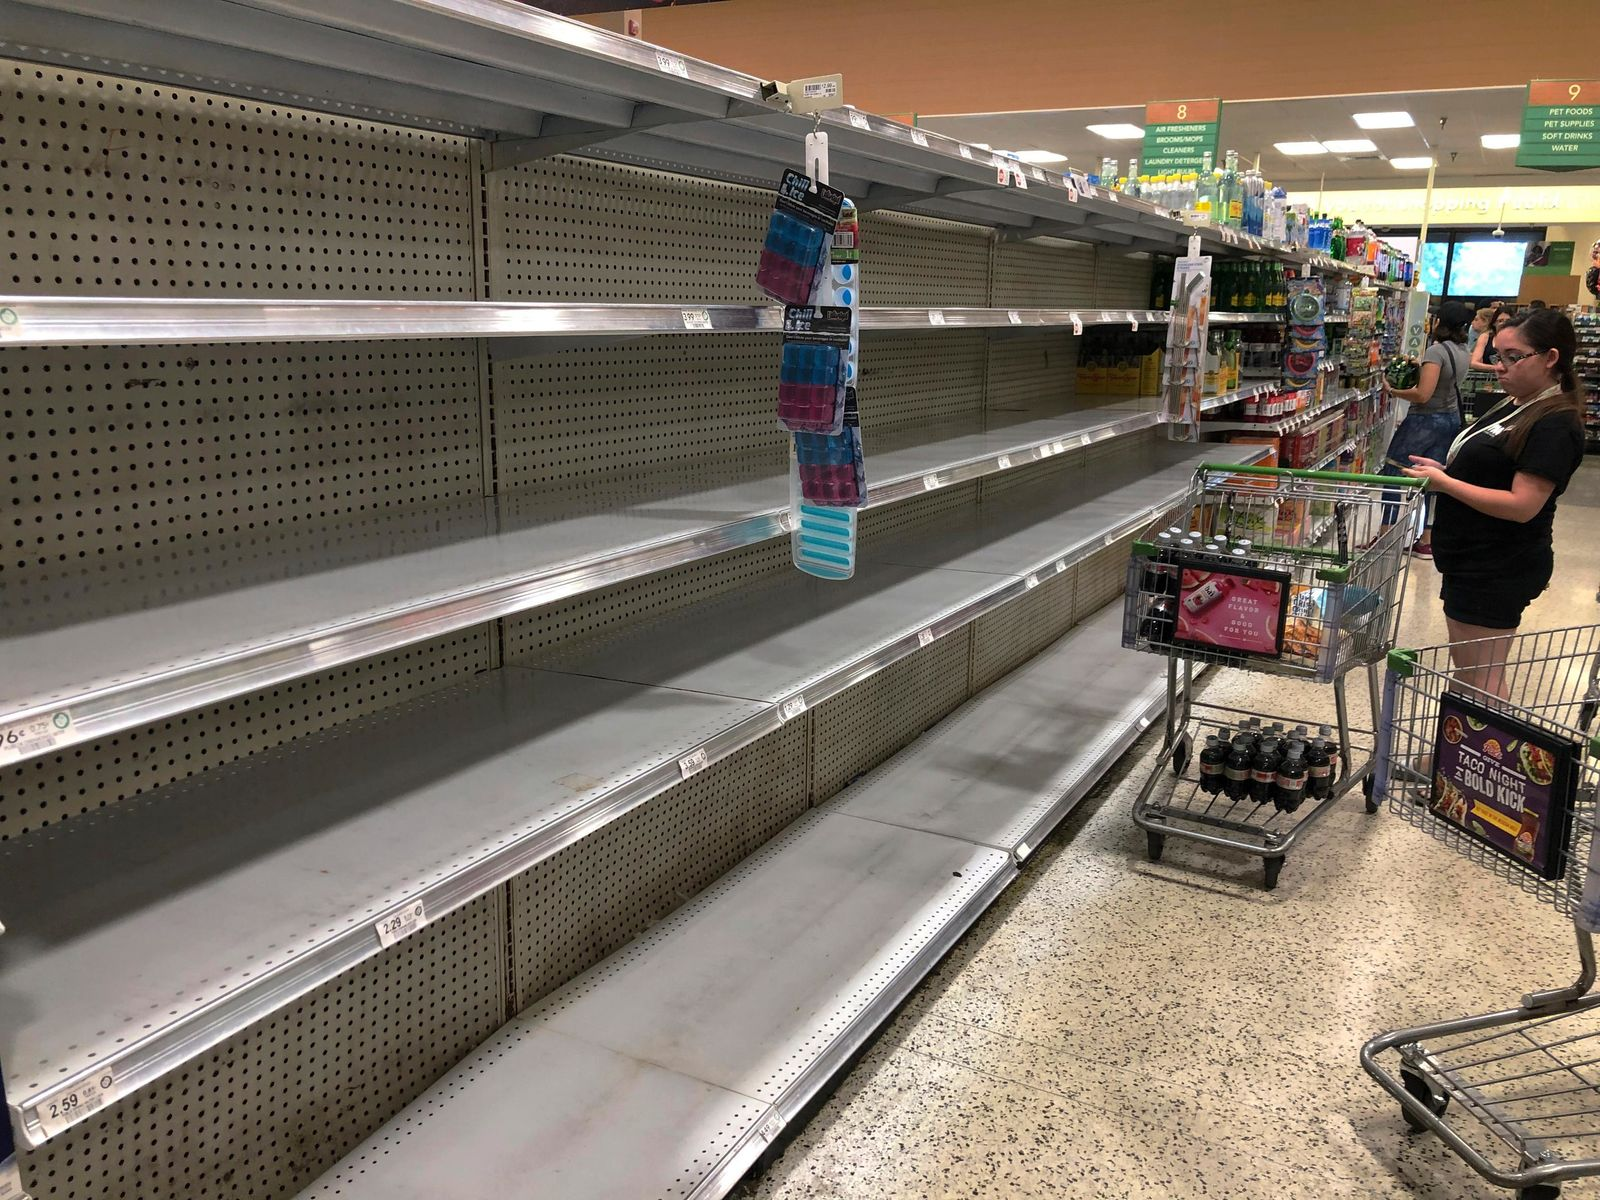 Store shelves are empty of bottled water as residents buy supplies in preparation for Hurricane Dorian,  in Doral, Fla., Thursday, July 29, 2019.{ } (AP Photo/Marcus Lim)